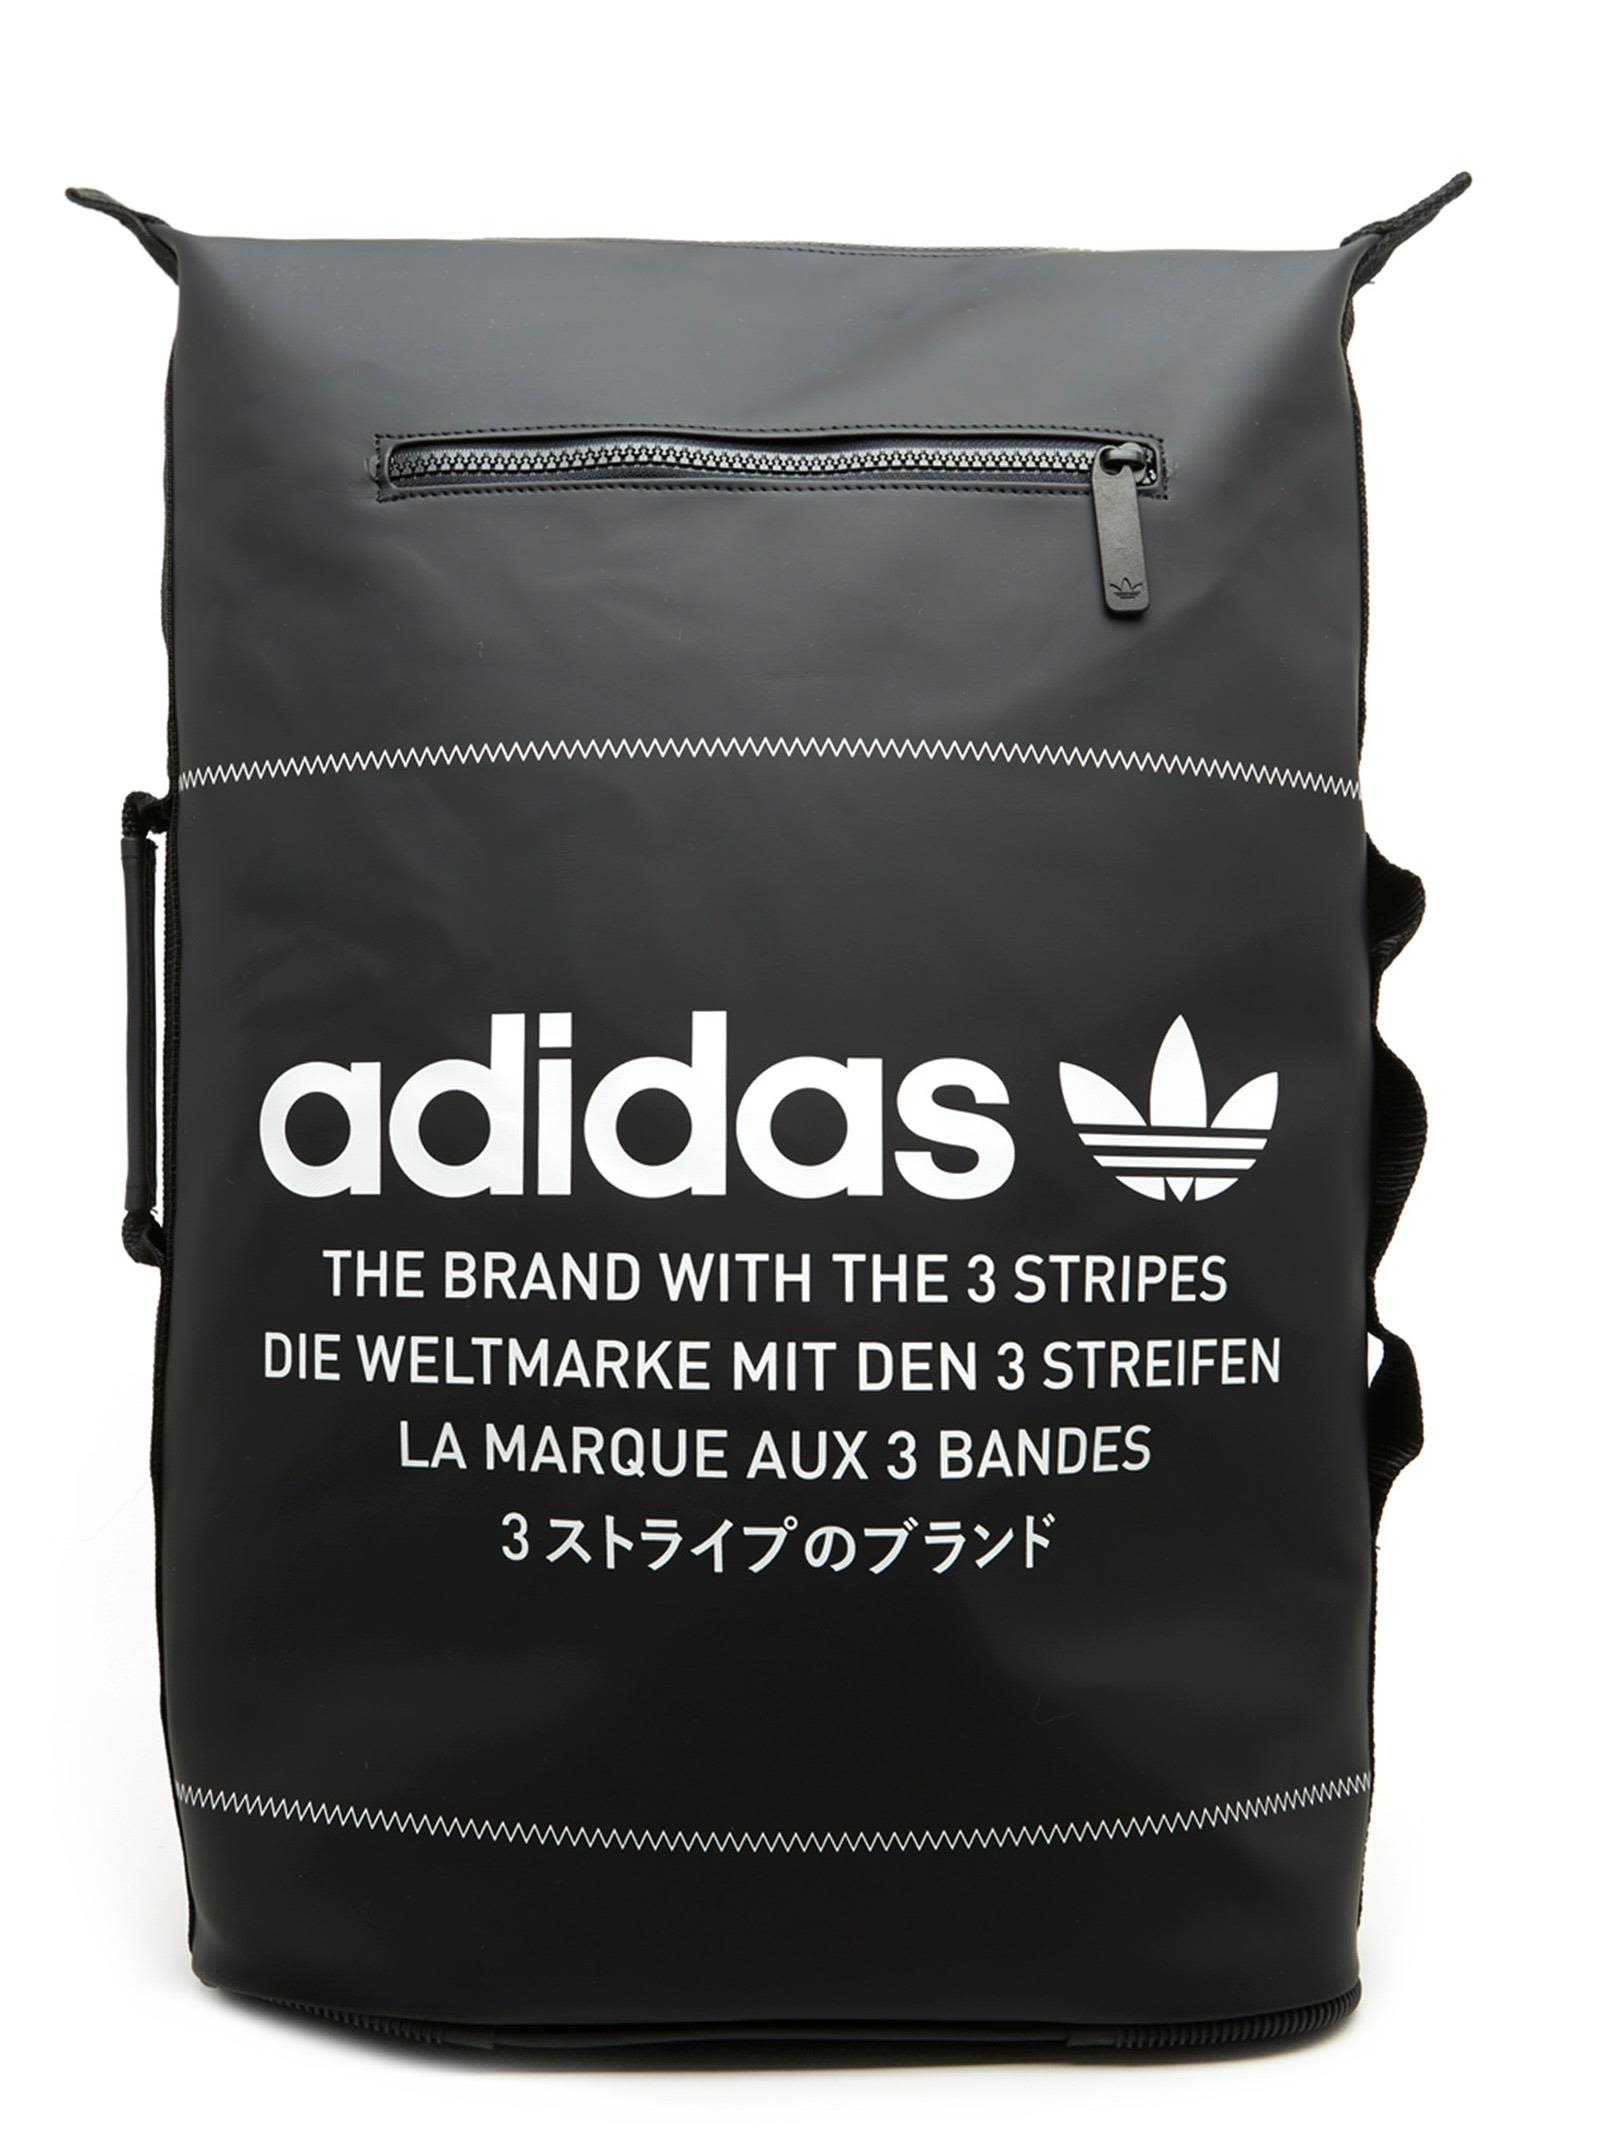 40e9fe65c Adidas Originals Nmd Backpack In Black Dh3097 - Black